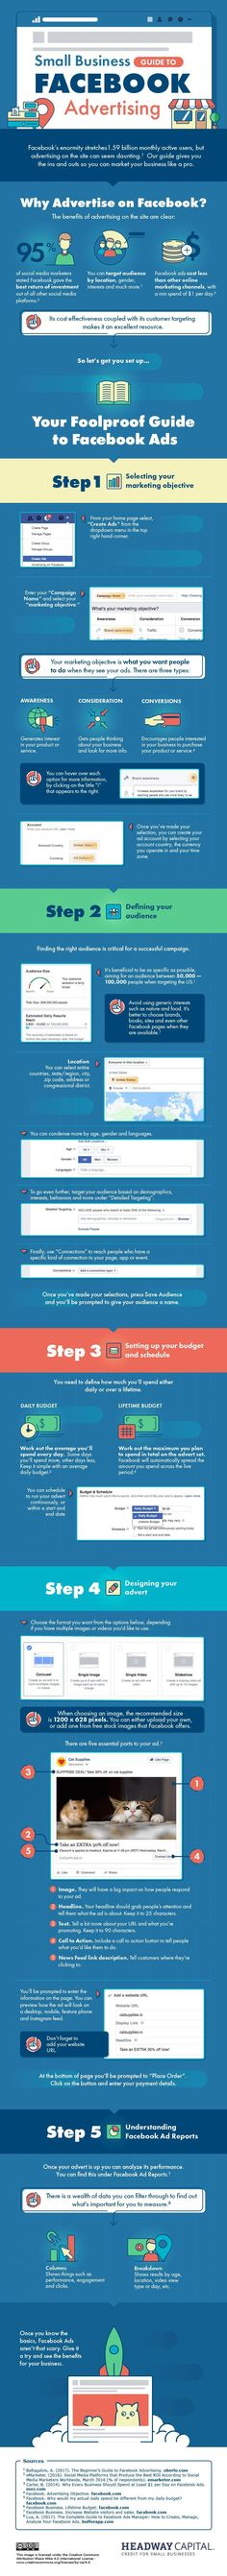 The Foolproof Guide to Advertising Your Small Business on Facebook [Infographic]